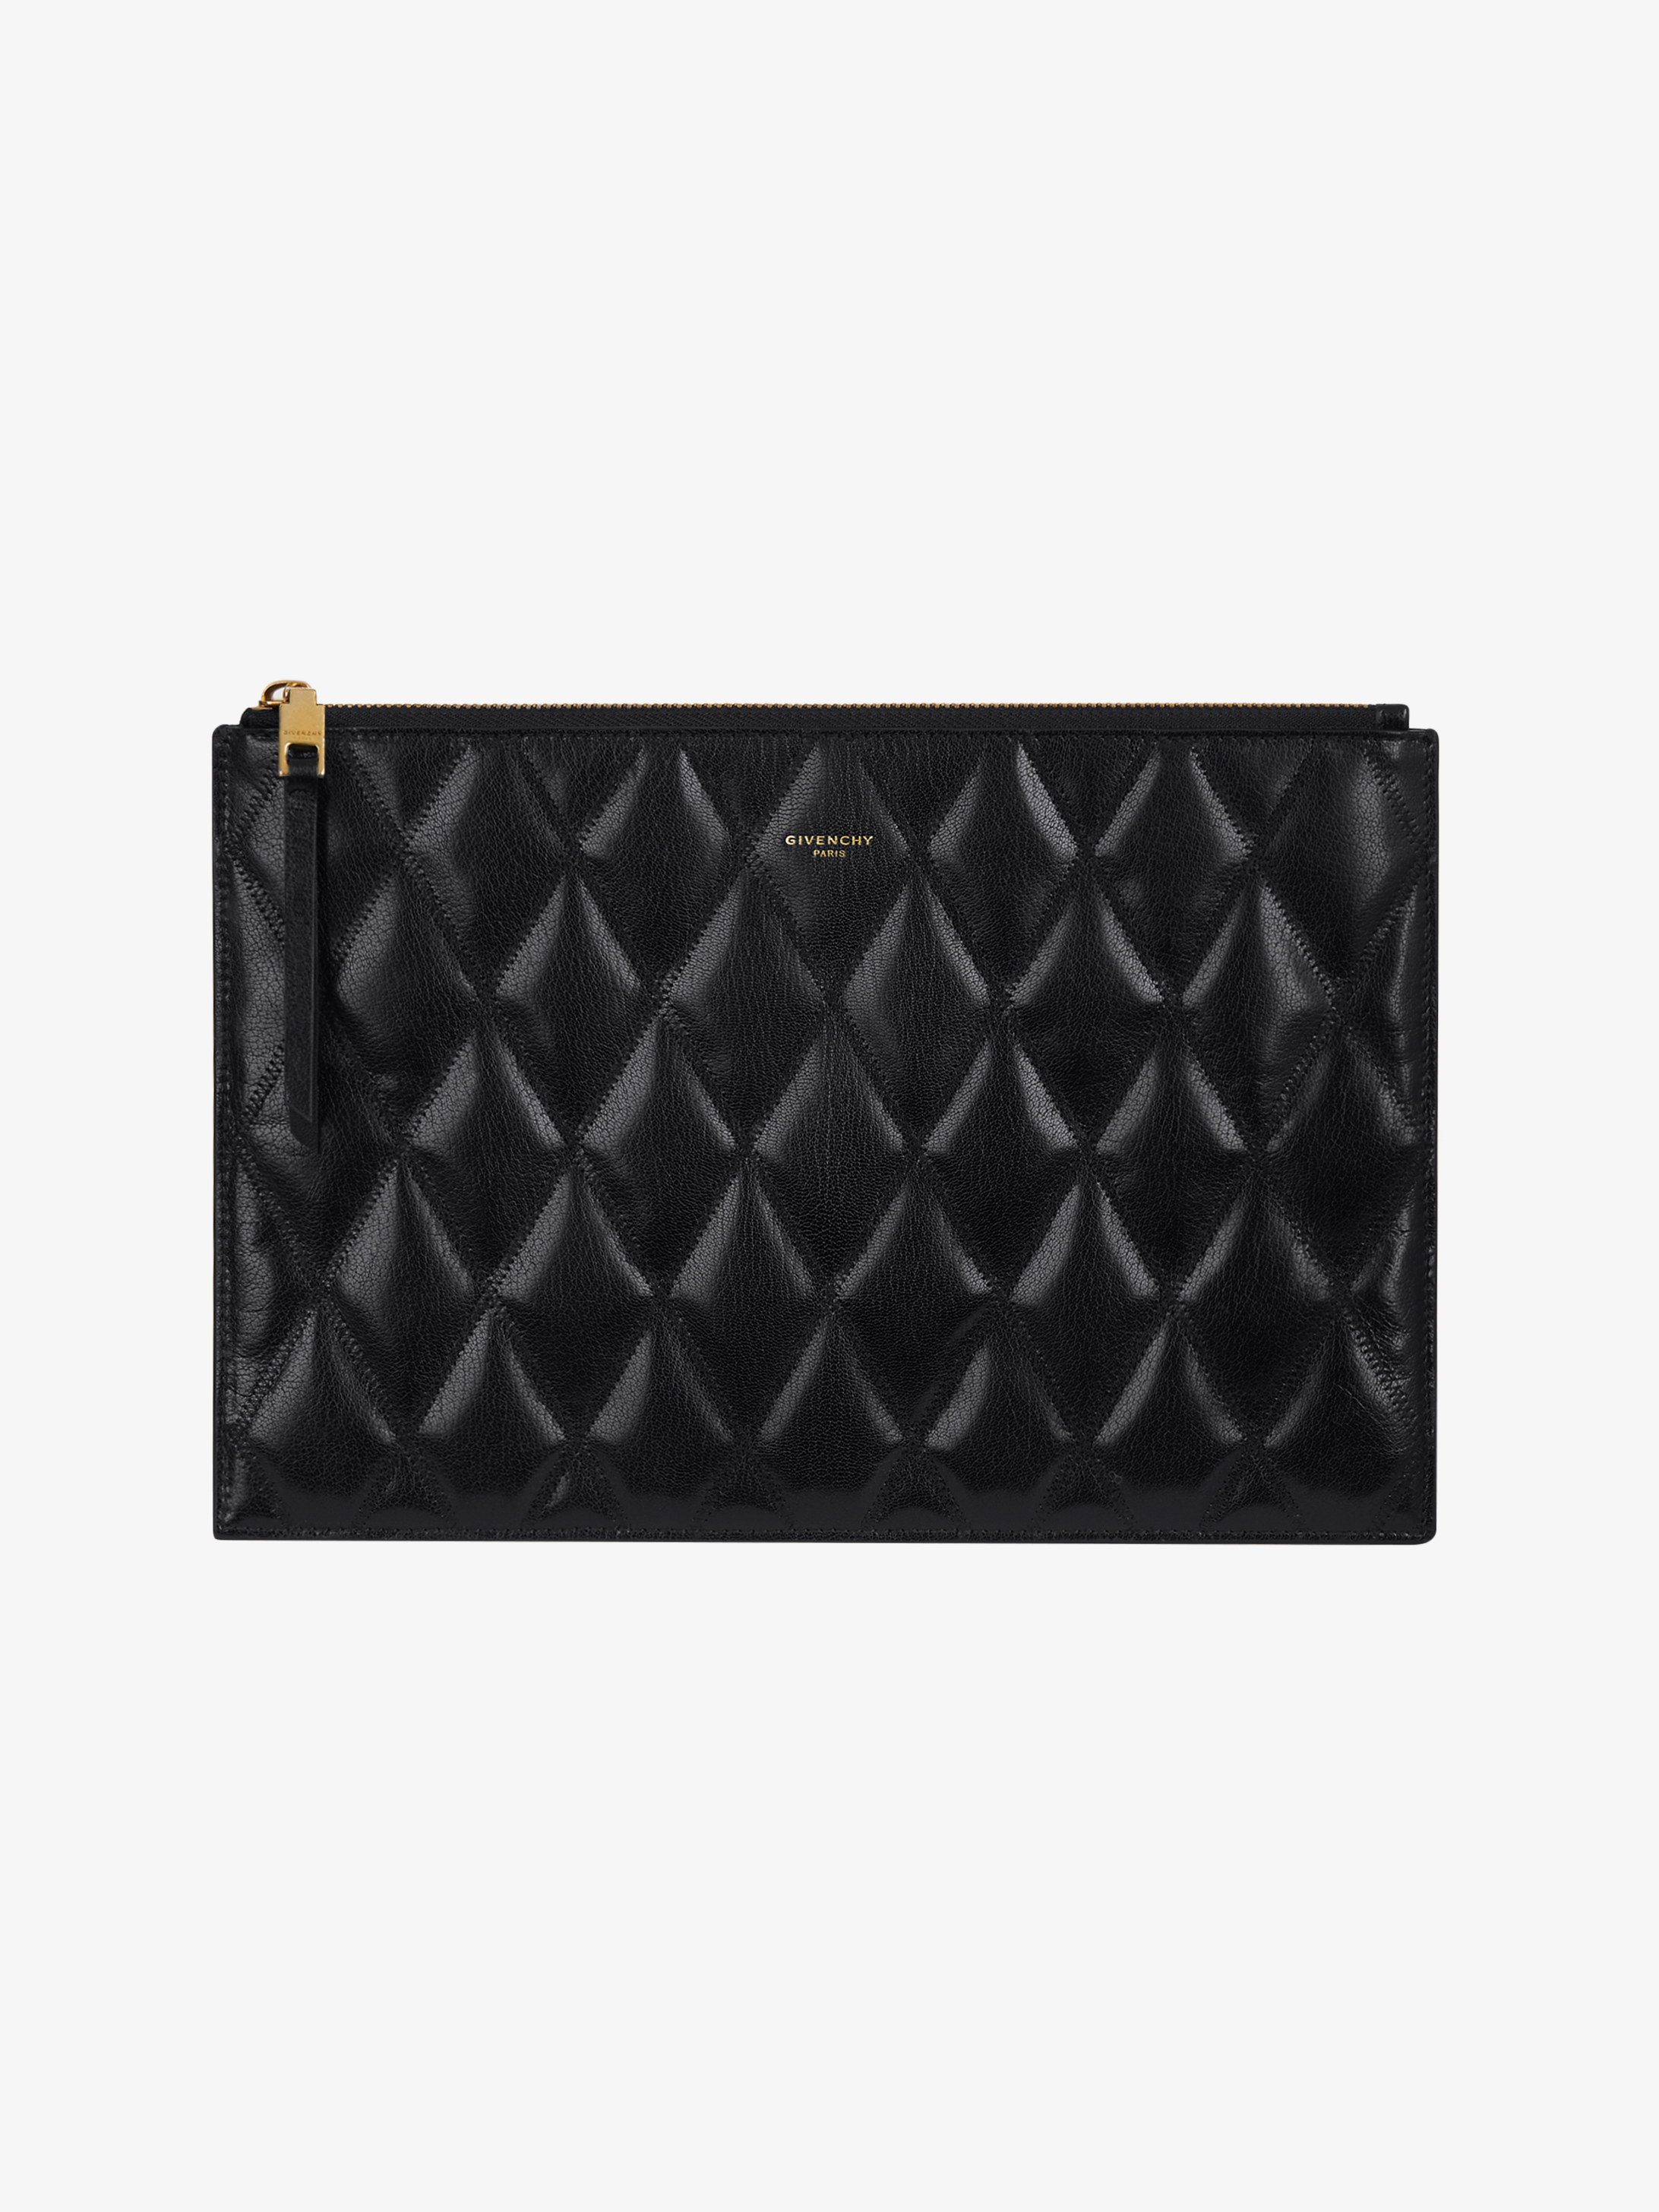 Pouch in diamond quilted leather